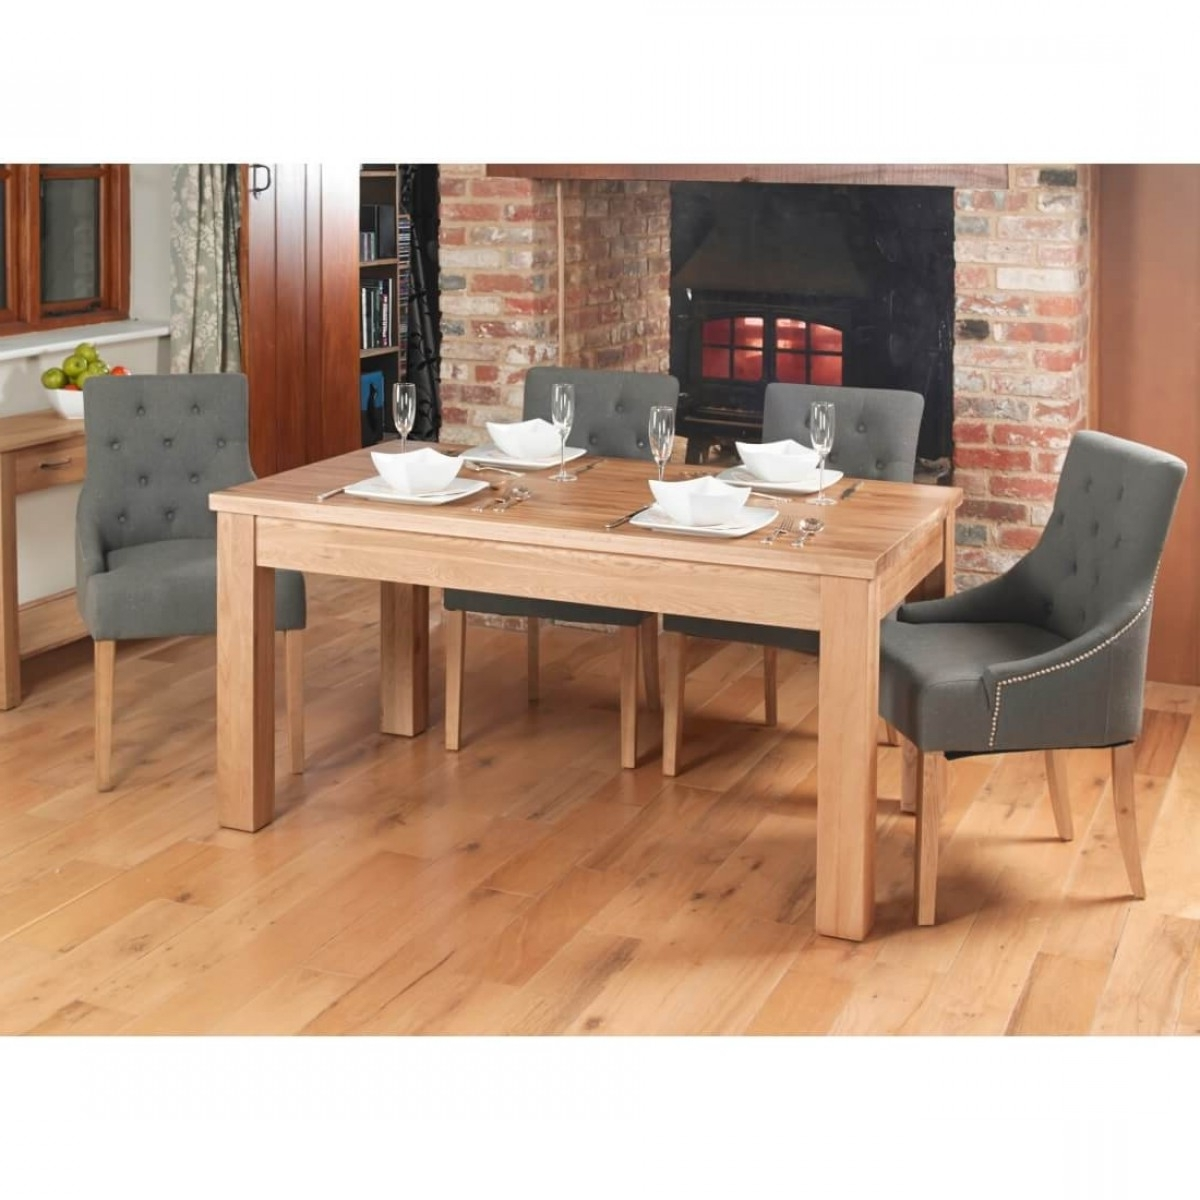 Dining Tables – Mobel Extending Oak Dining Table (4 8 Seater) Cor04E Intended For Most Current 8 Seater Oak Dining Tables (View 15 of 25)